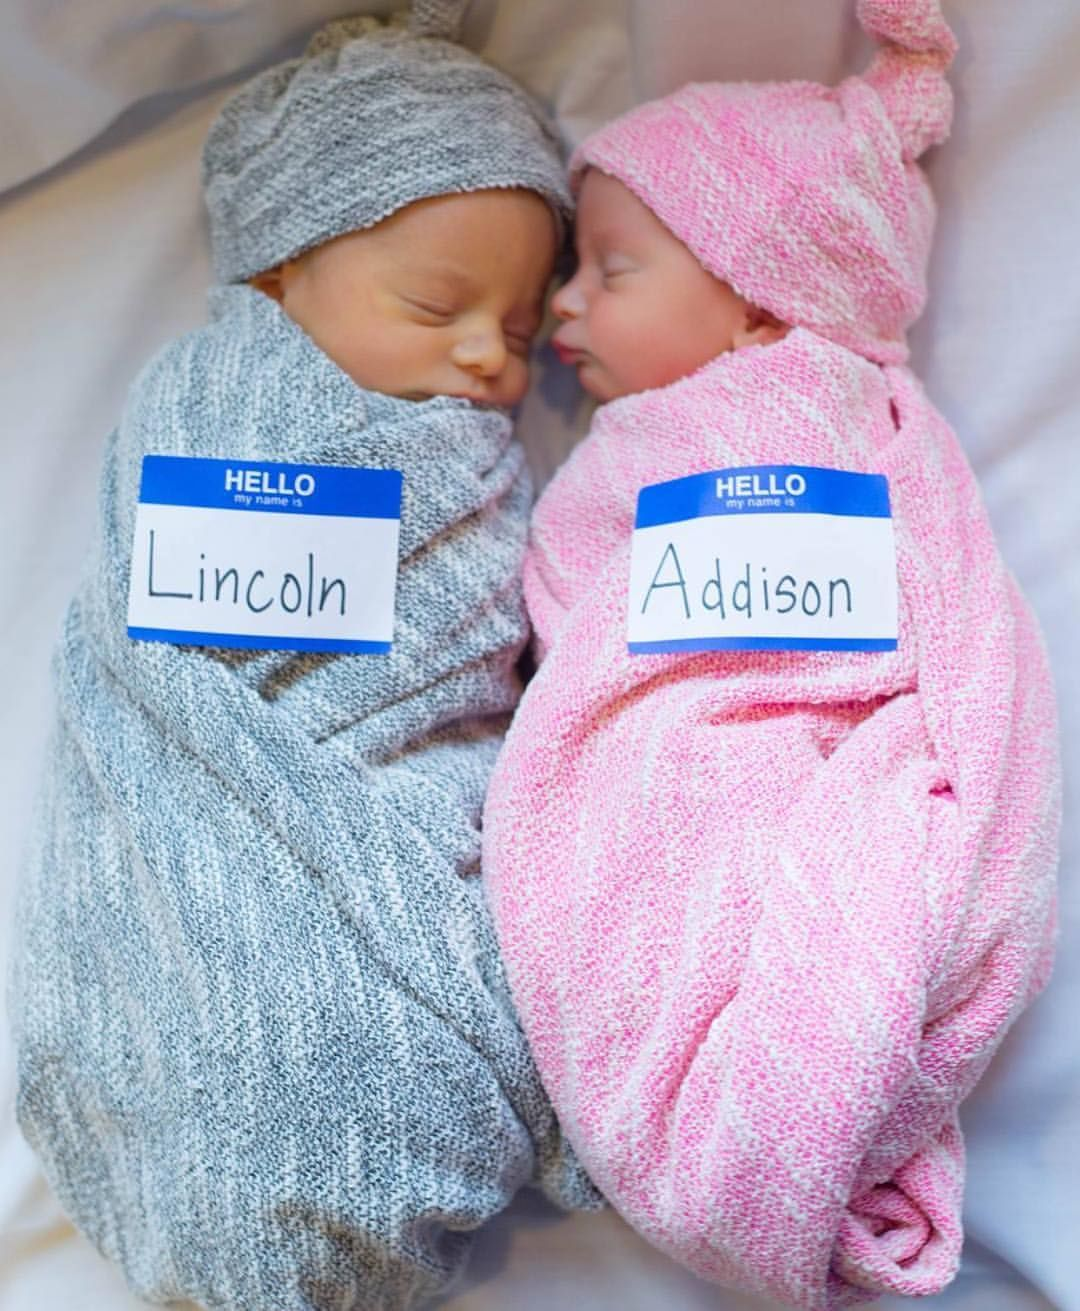 Twin life. Boy and girl swaddles at kbcute.com  7418bce1466d